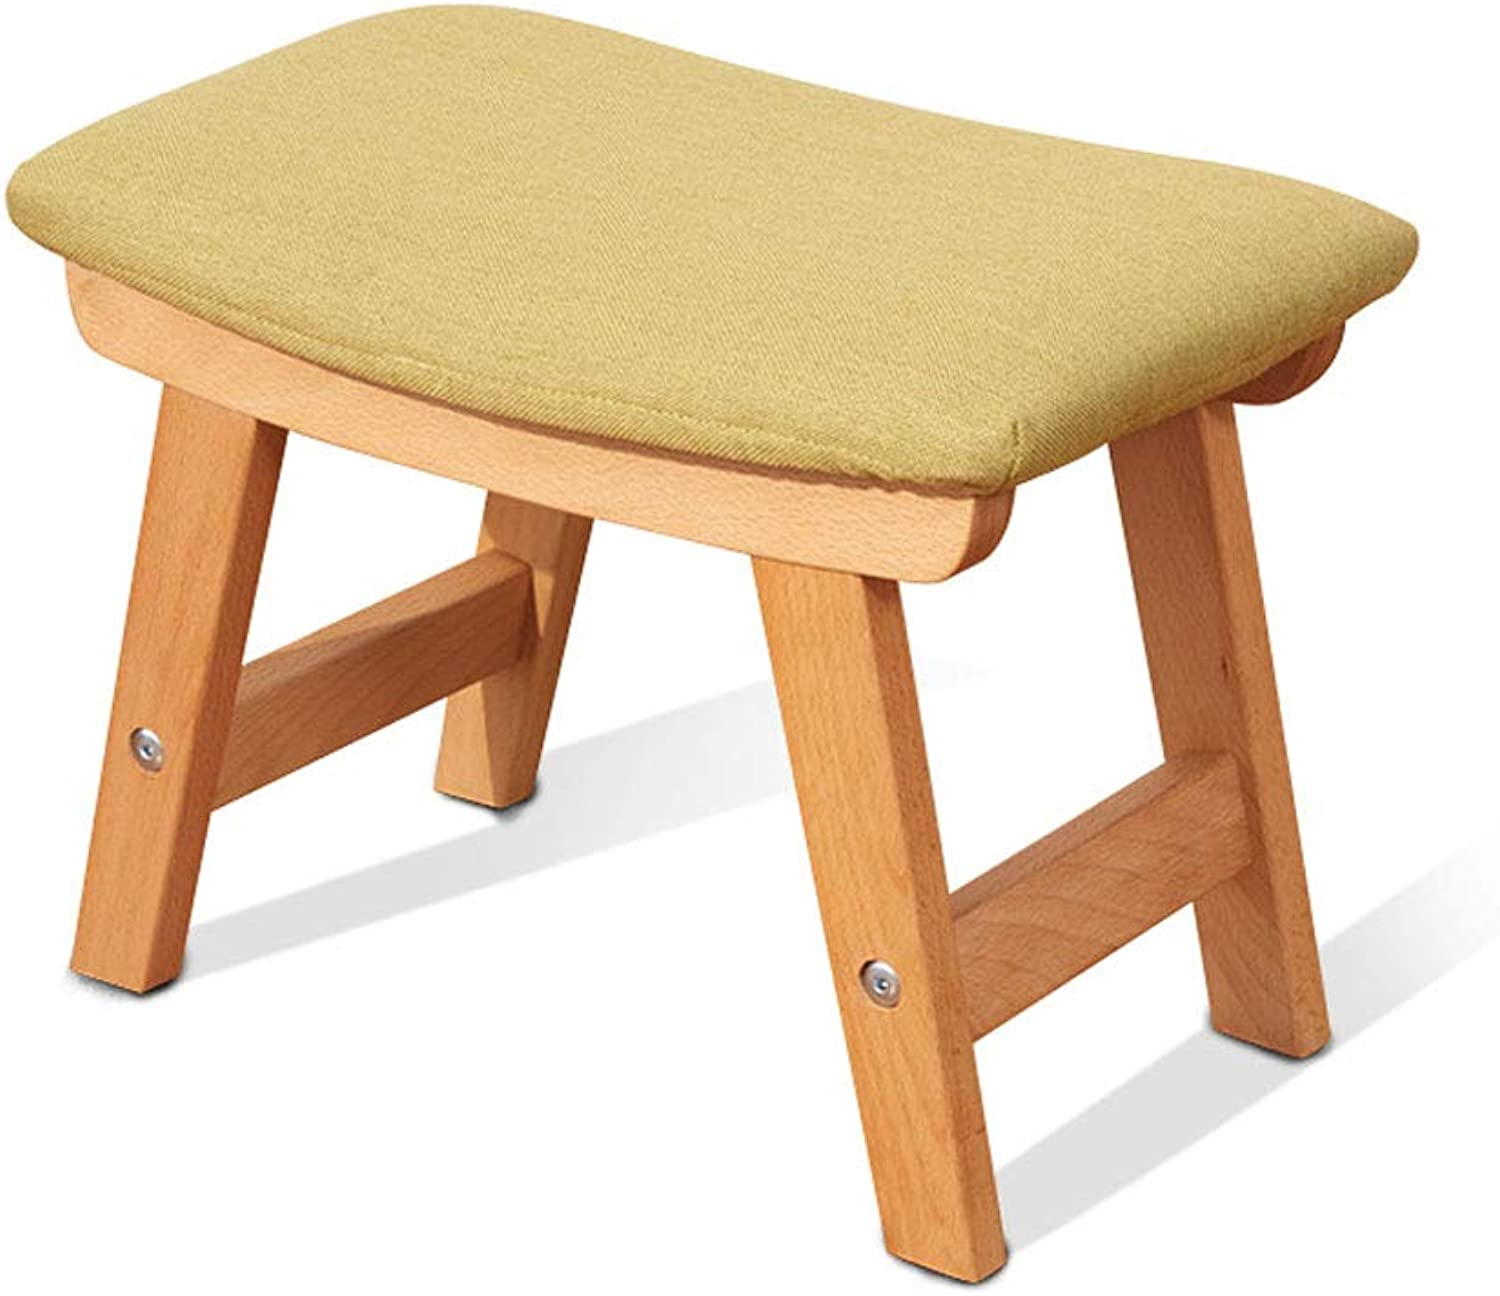 Solid Wood Stool, Beech Living Room Home Small Bench Change Wear shoes Short Stool Comfortable Fabric Sofa Stool (color   Green)